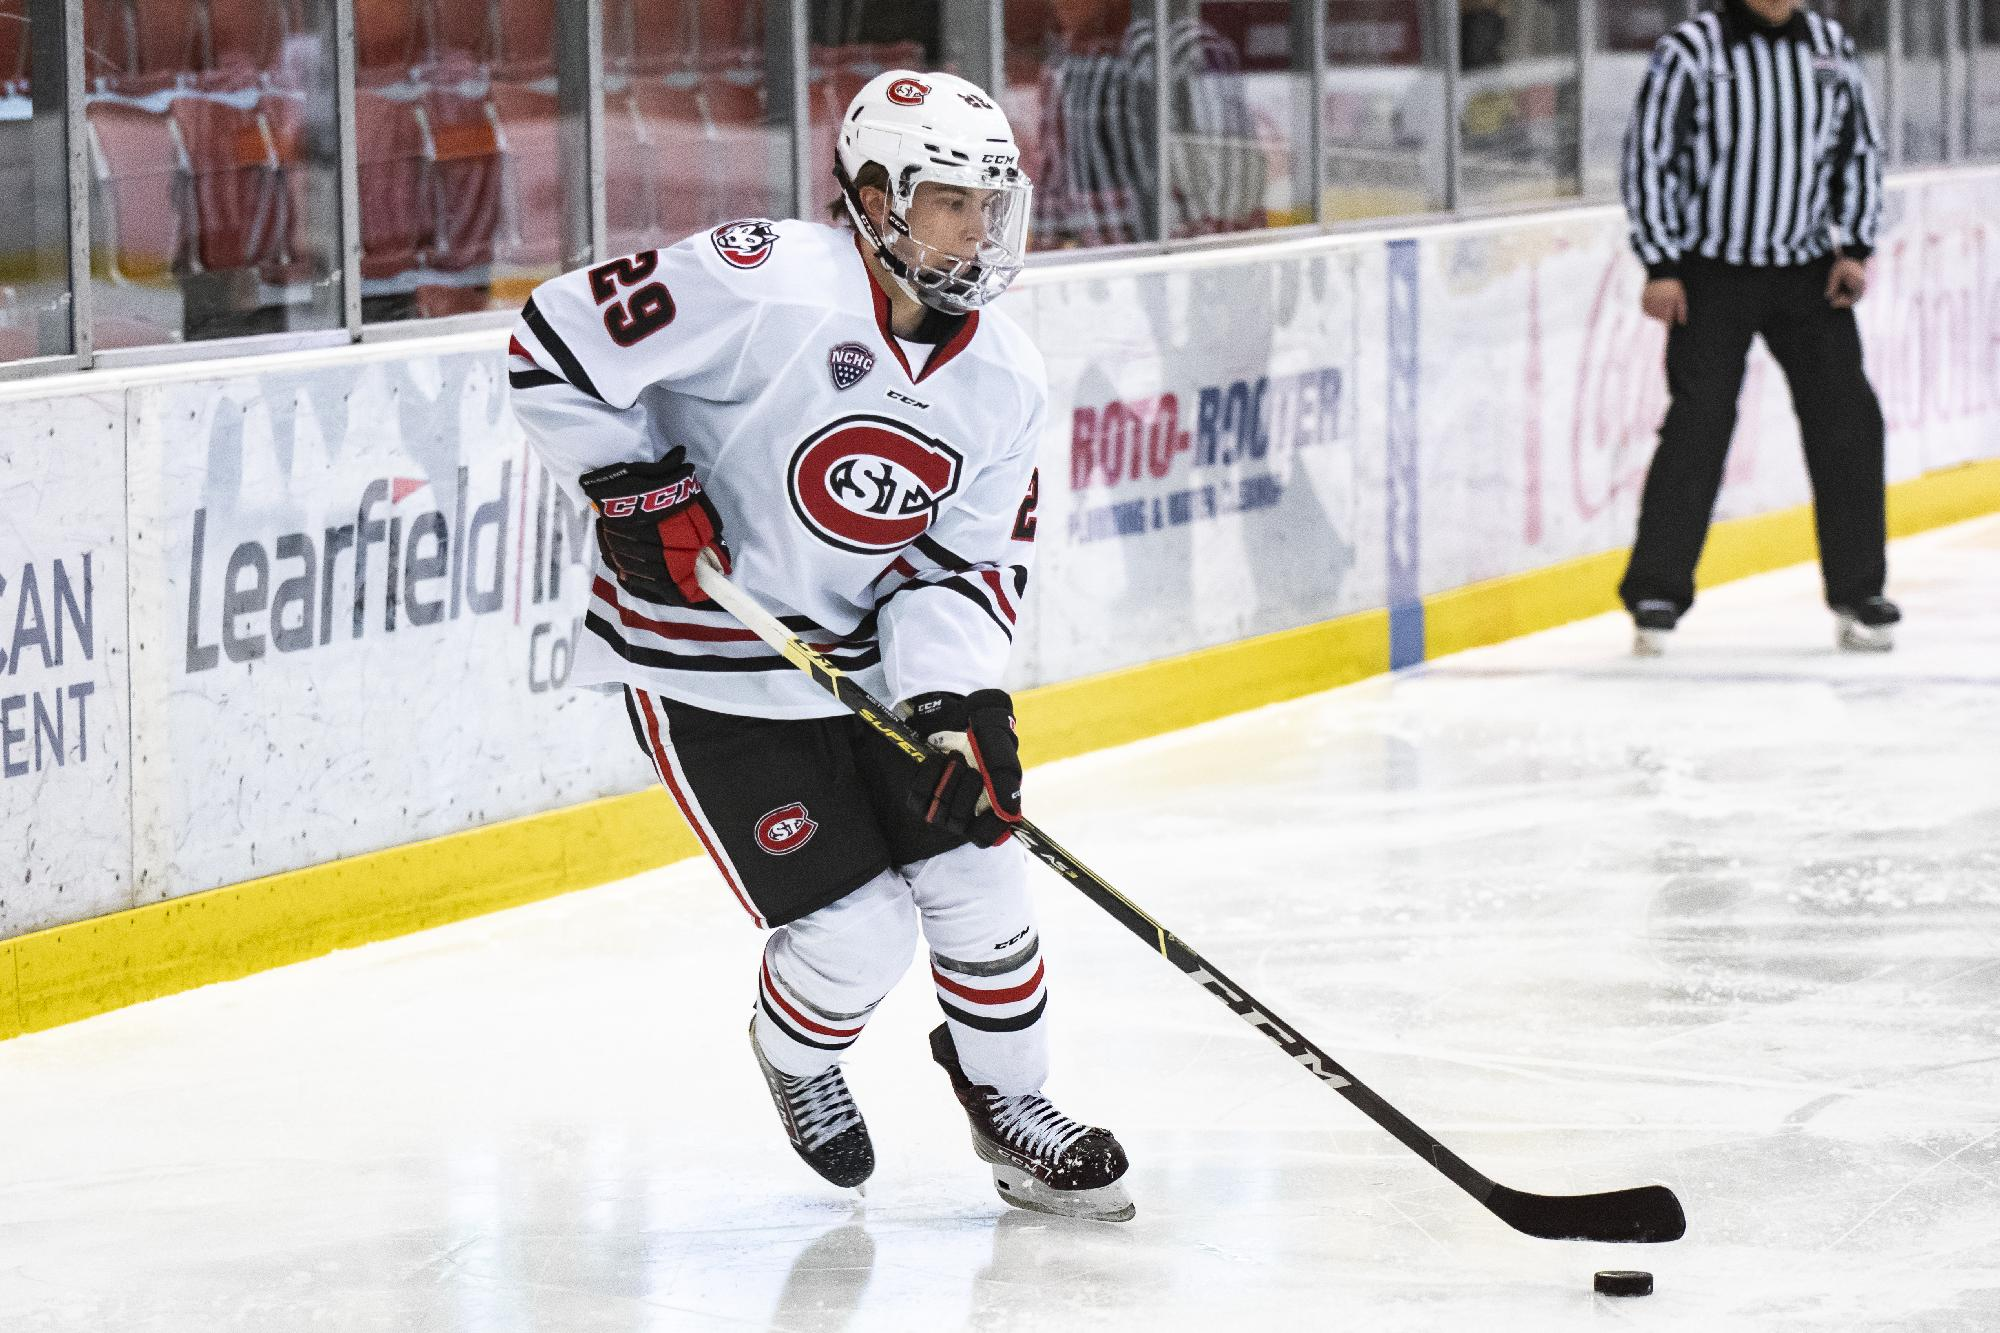 NCAA hockey: Getting to know St. Cloud State